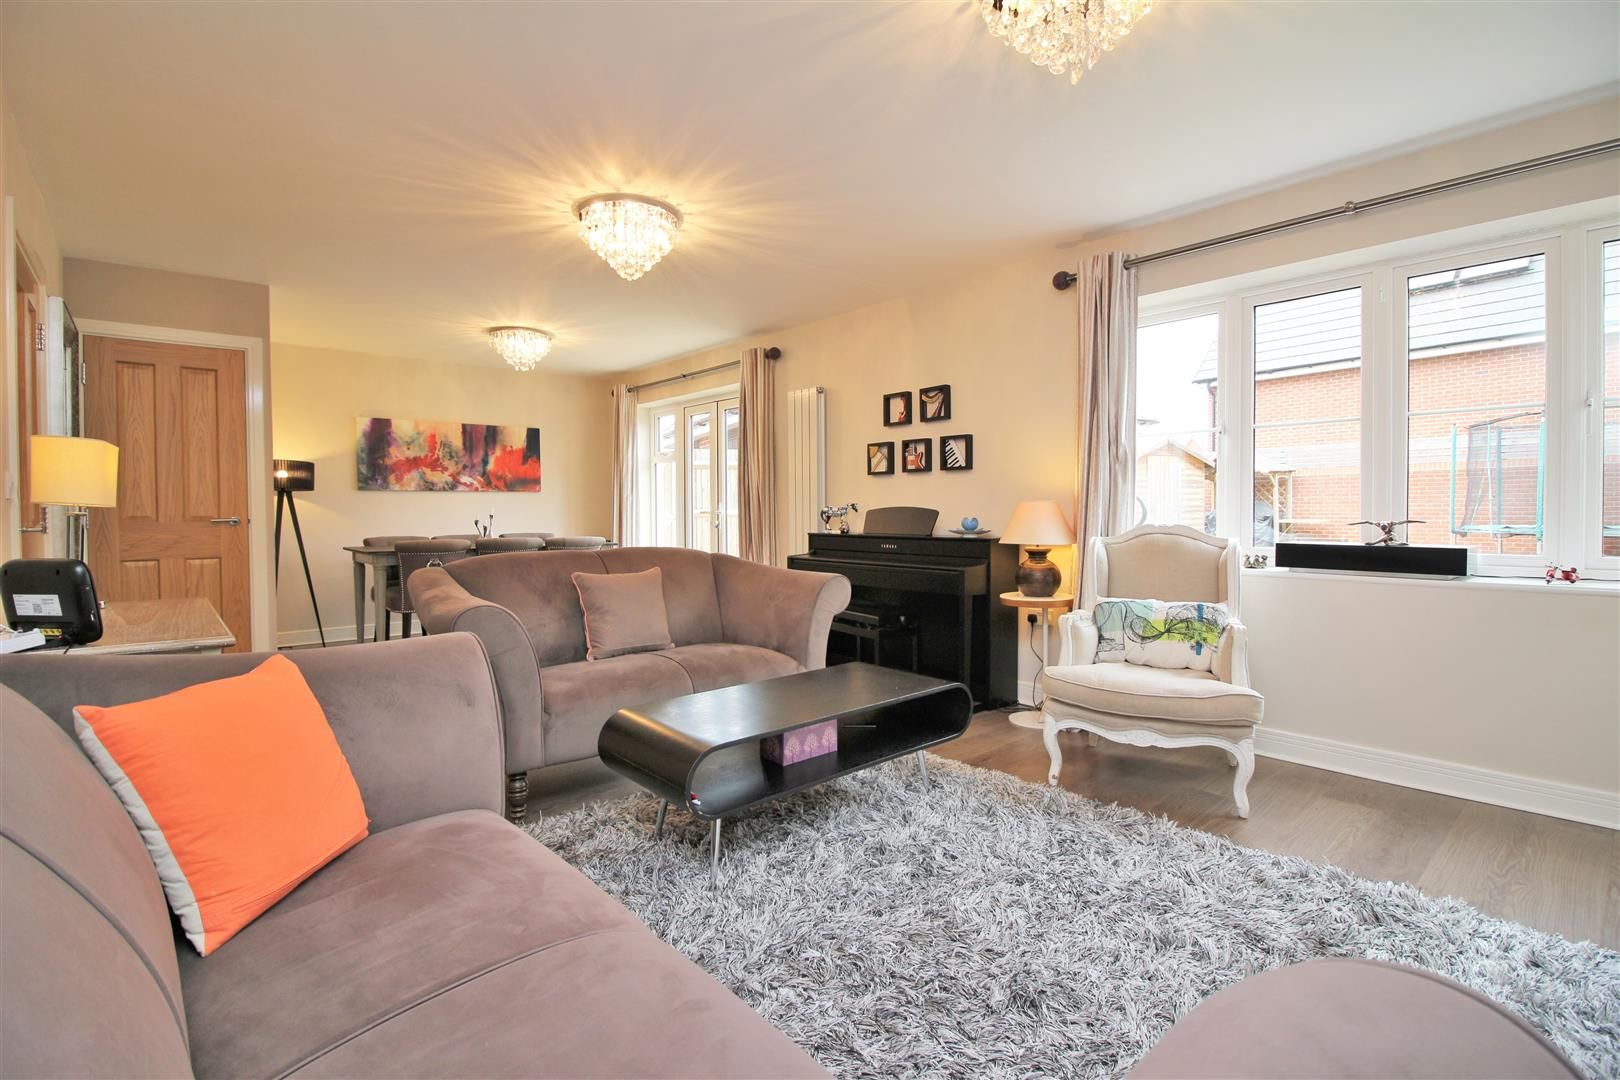 4 bed to rent in Leavesden - (Property Image 2)